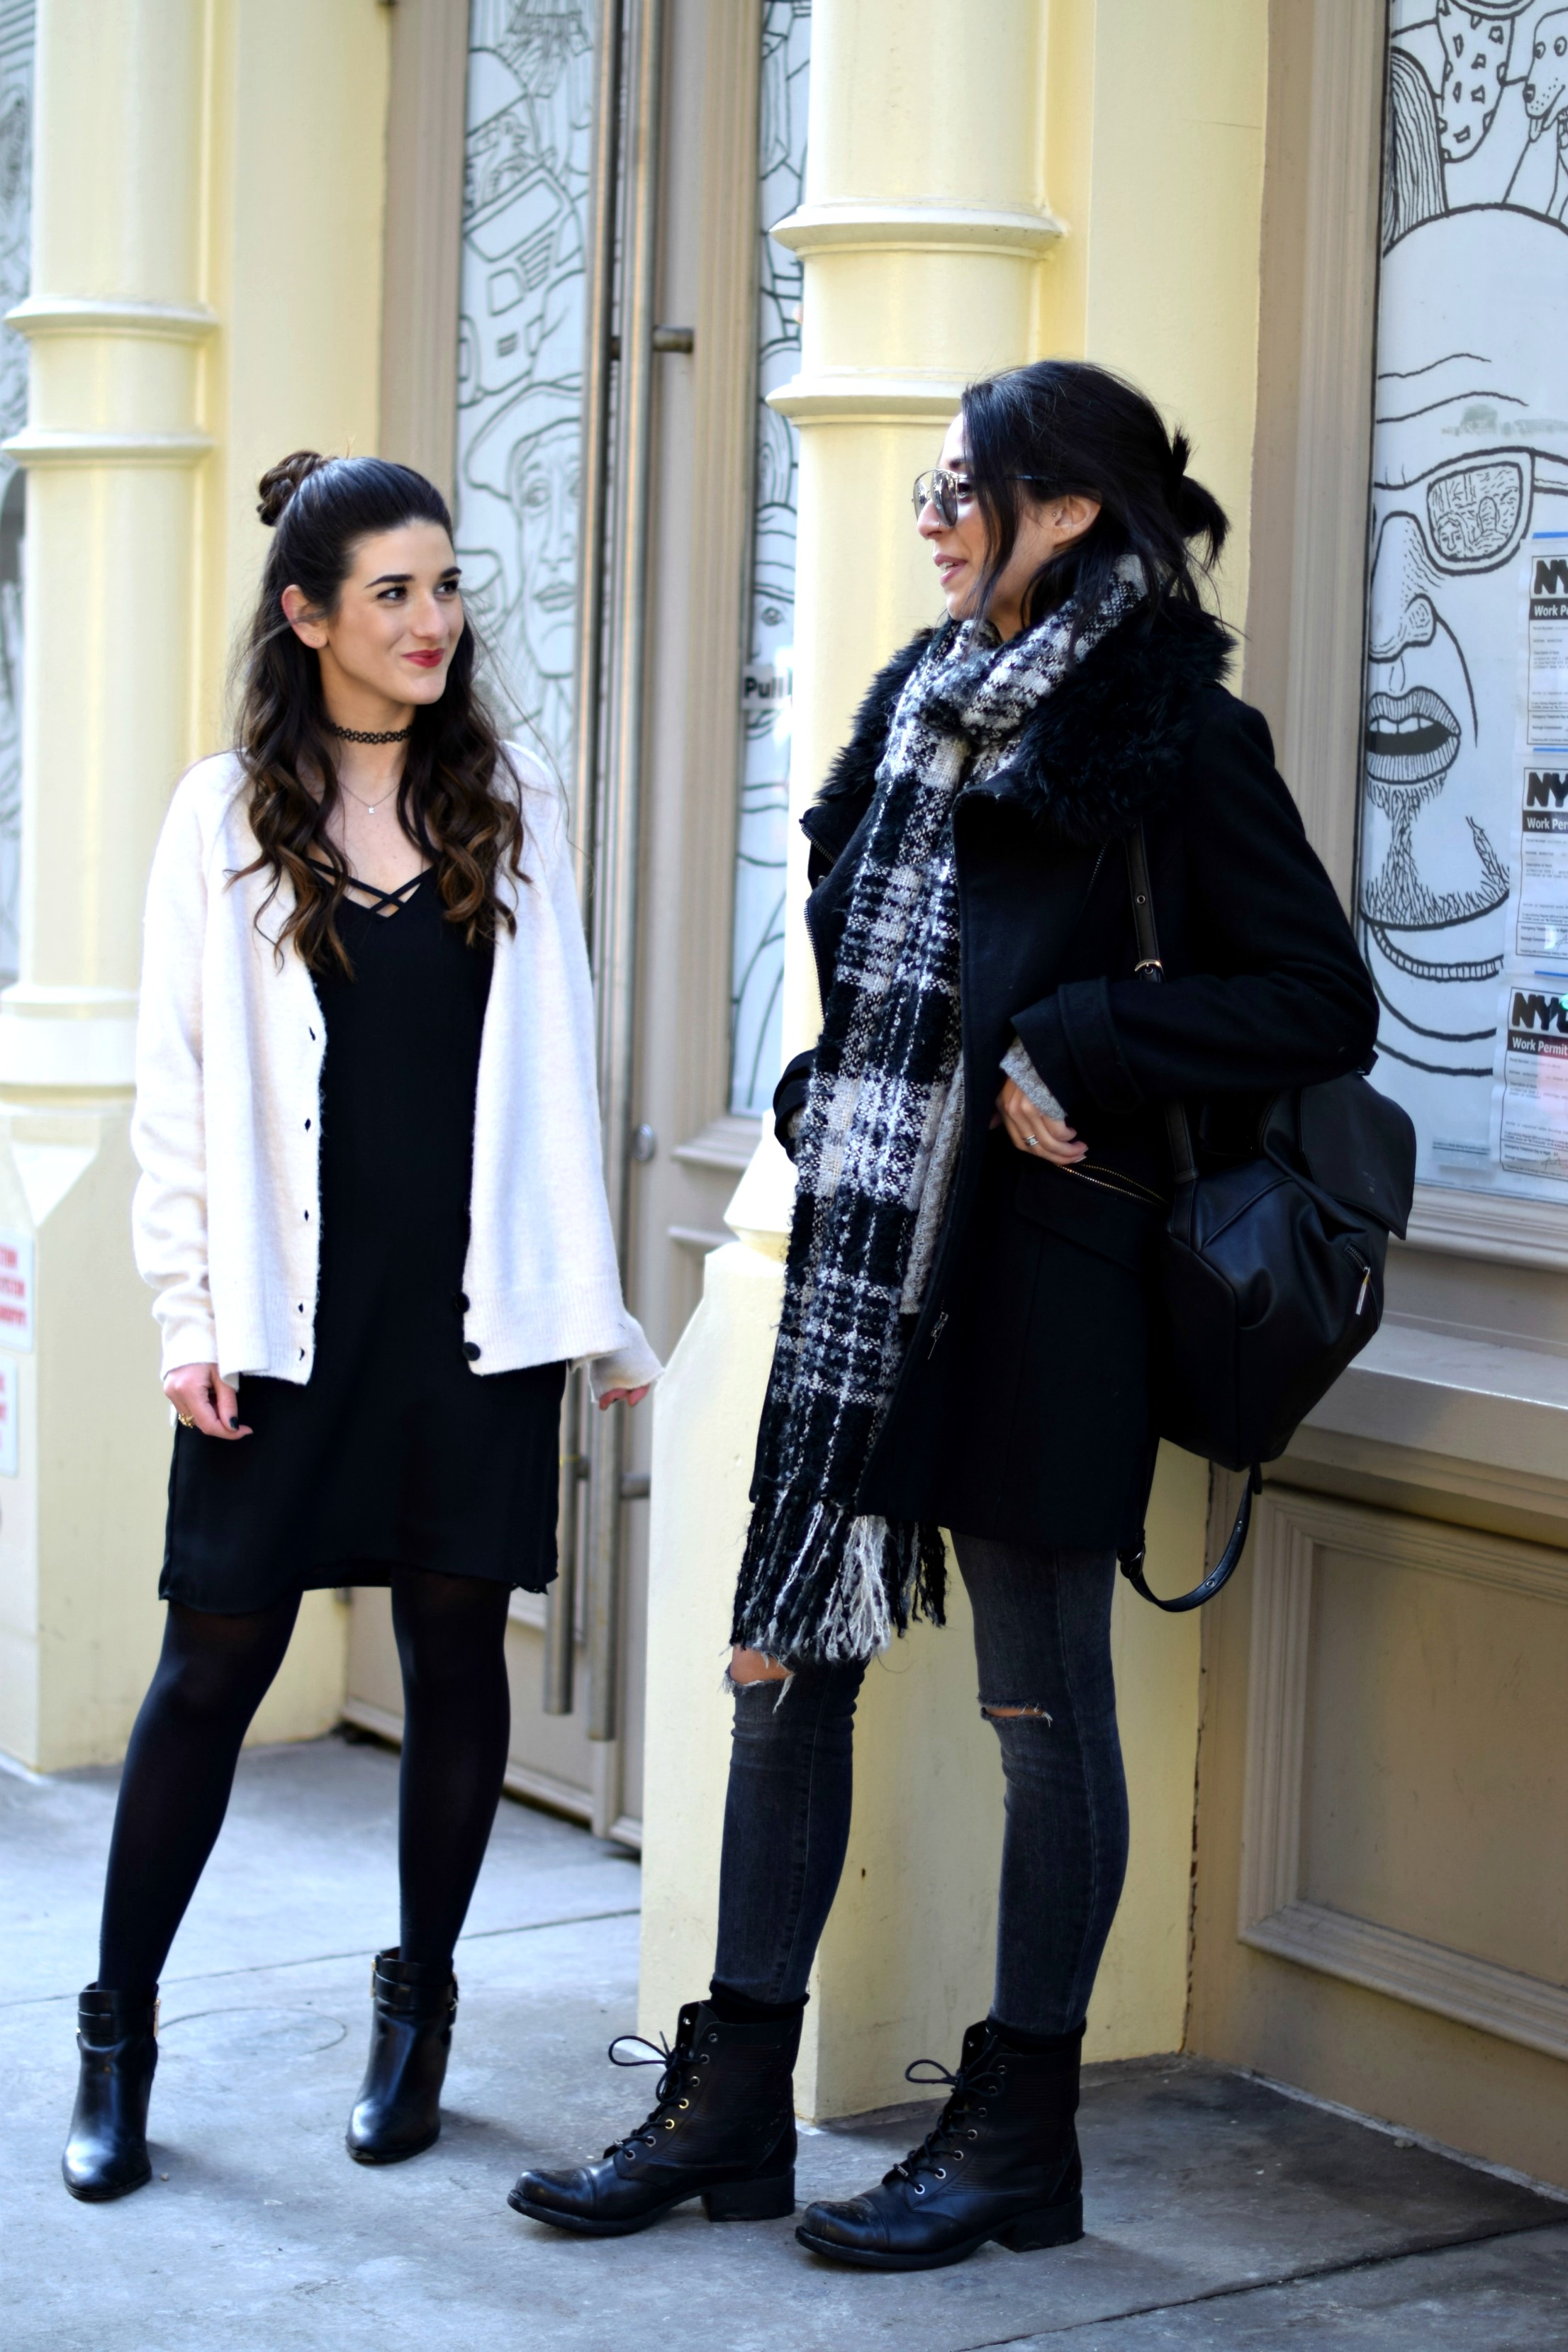 Black Lingerie Dress White Sweater Louboutins & Love Fashion Blog Esther Santer NYC Street Style Outfit OOTD Inspo Bralette Brandy Melville Photoshoot Model Girl Women Brunch Coffee Latte Art Sunglasses Shoes Booties Tights Chunky Knits Choker Winter.jpg